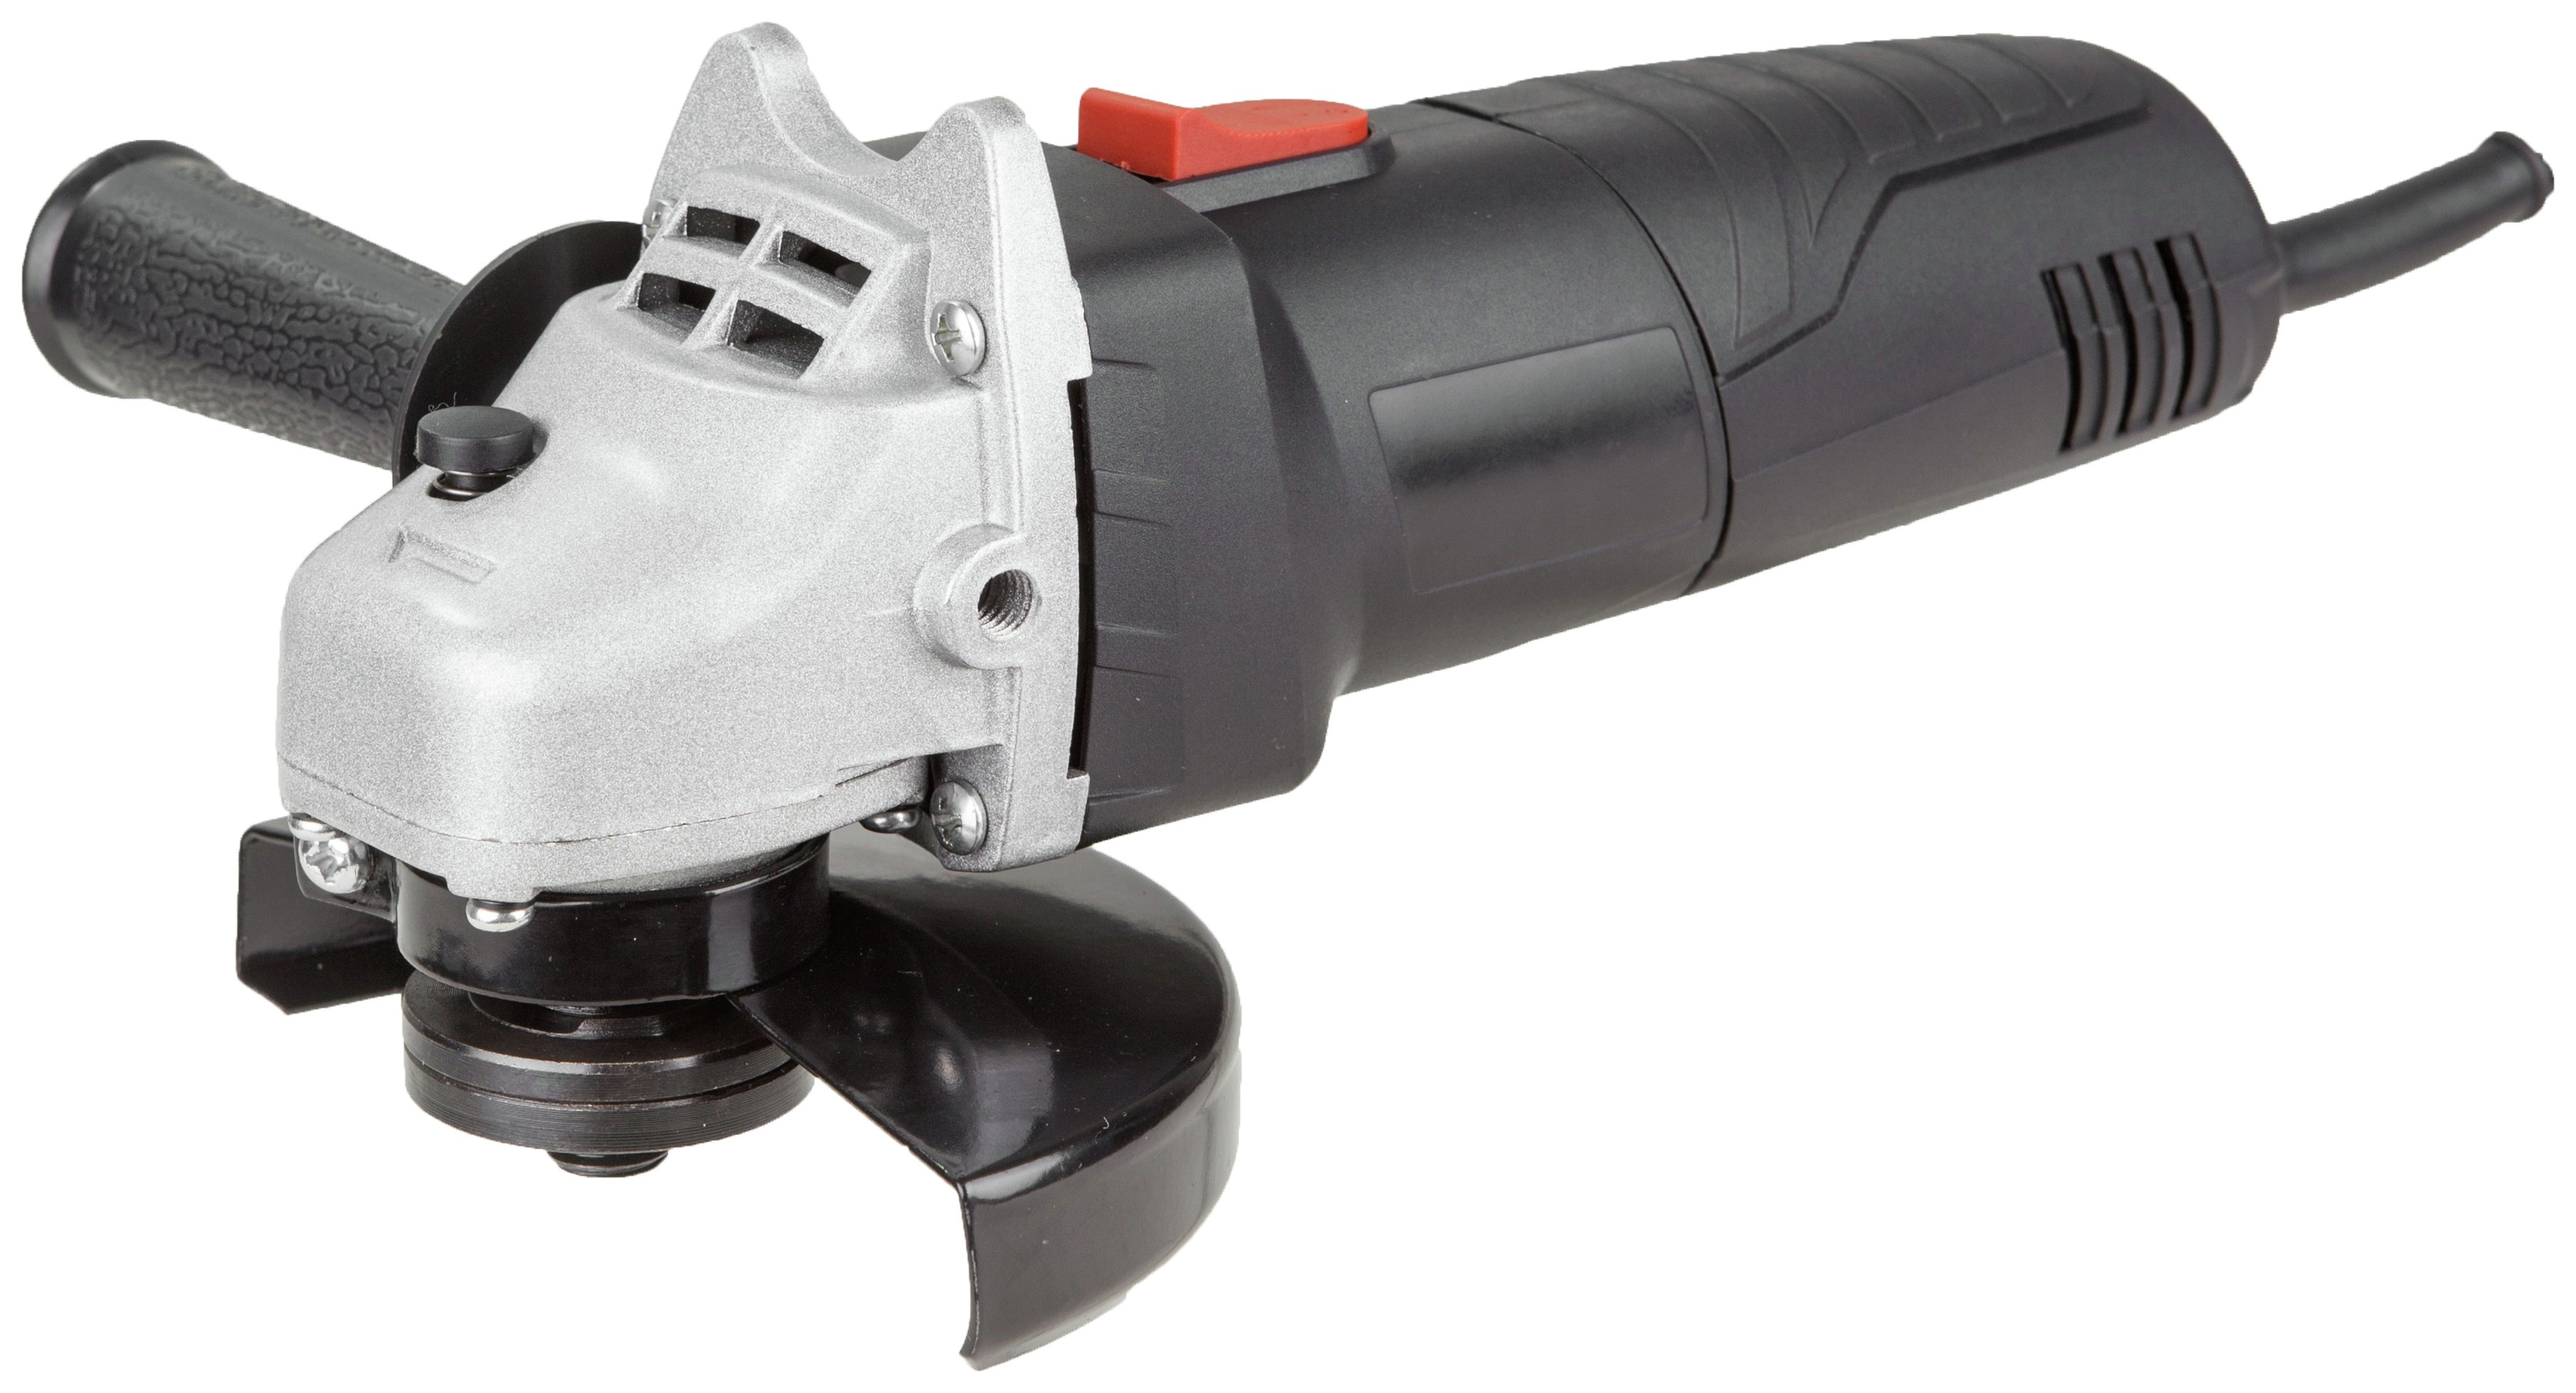 Simple Value - 115Mm Angle Grinder - 500W lowest price